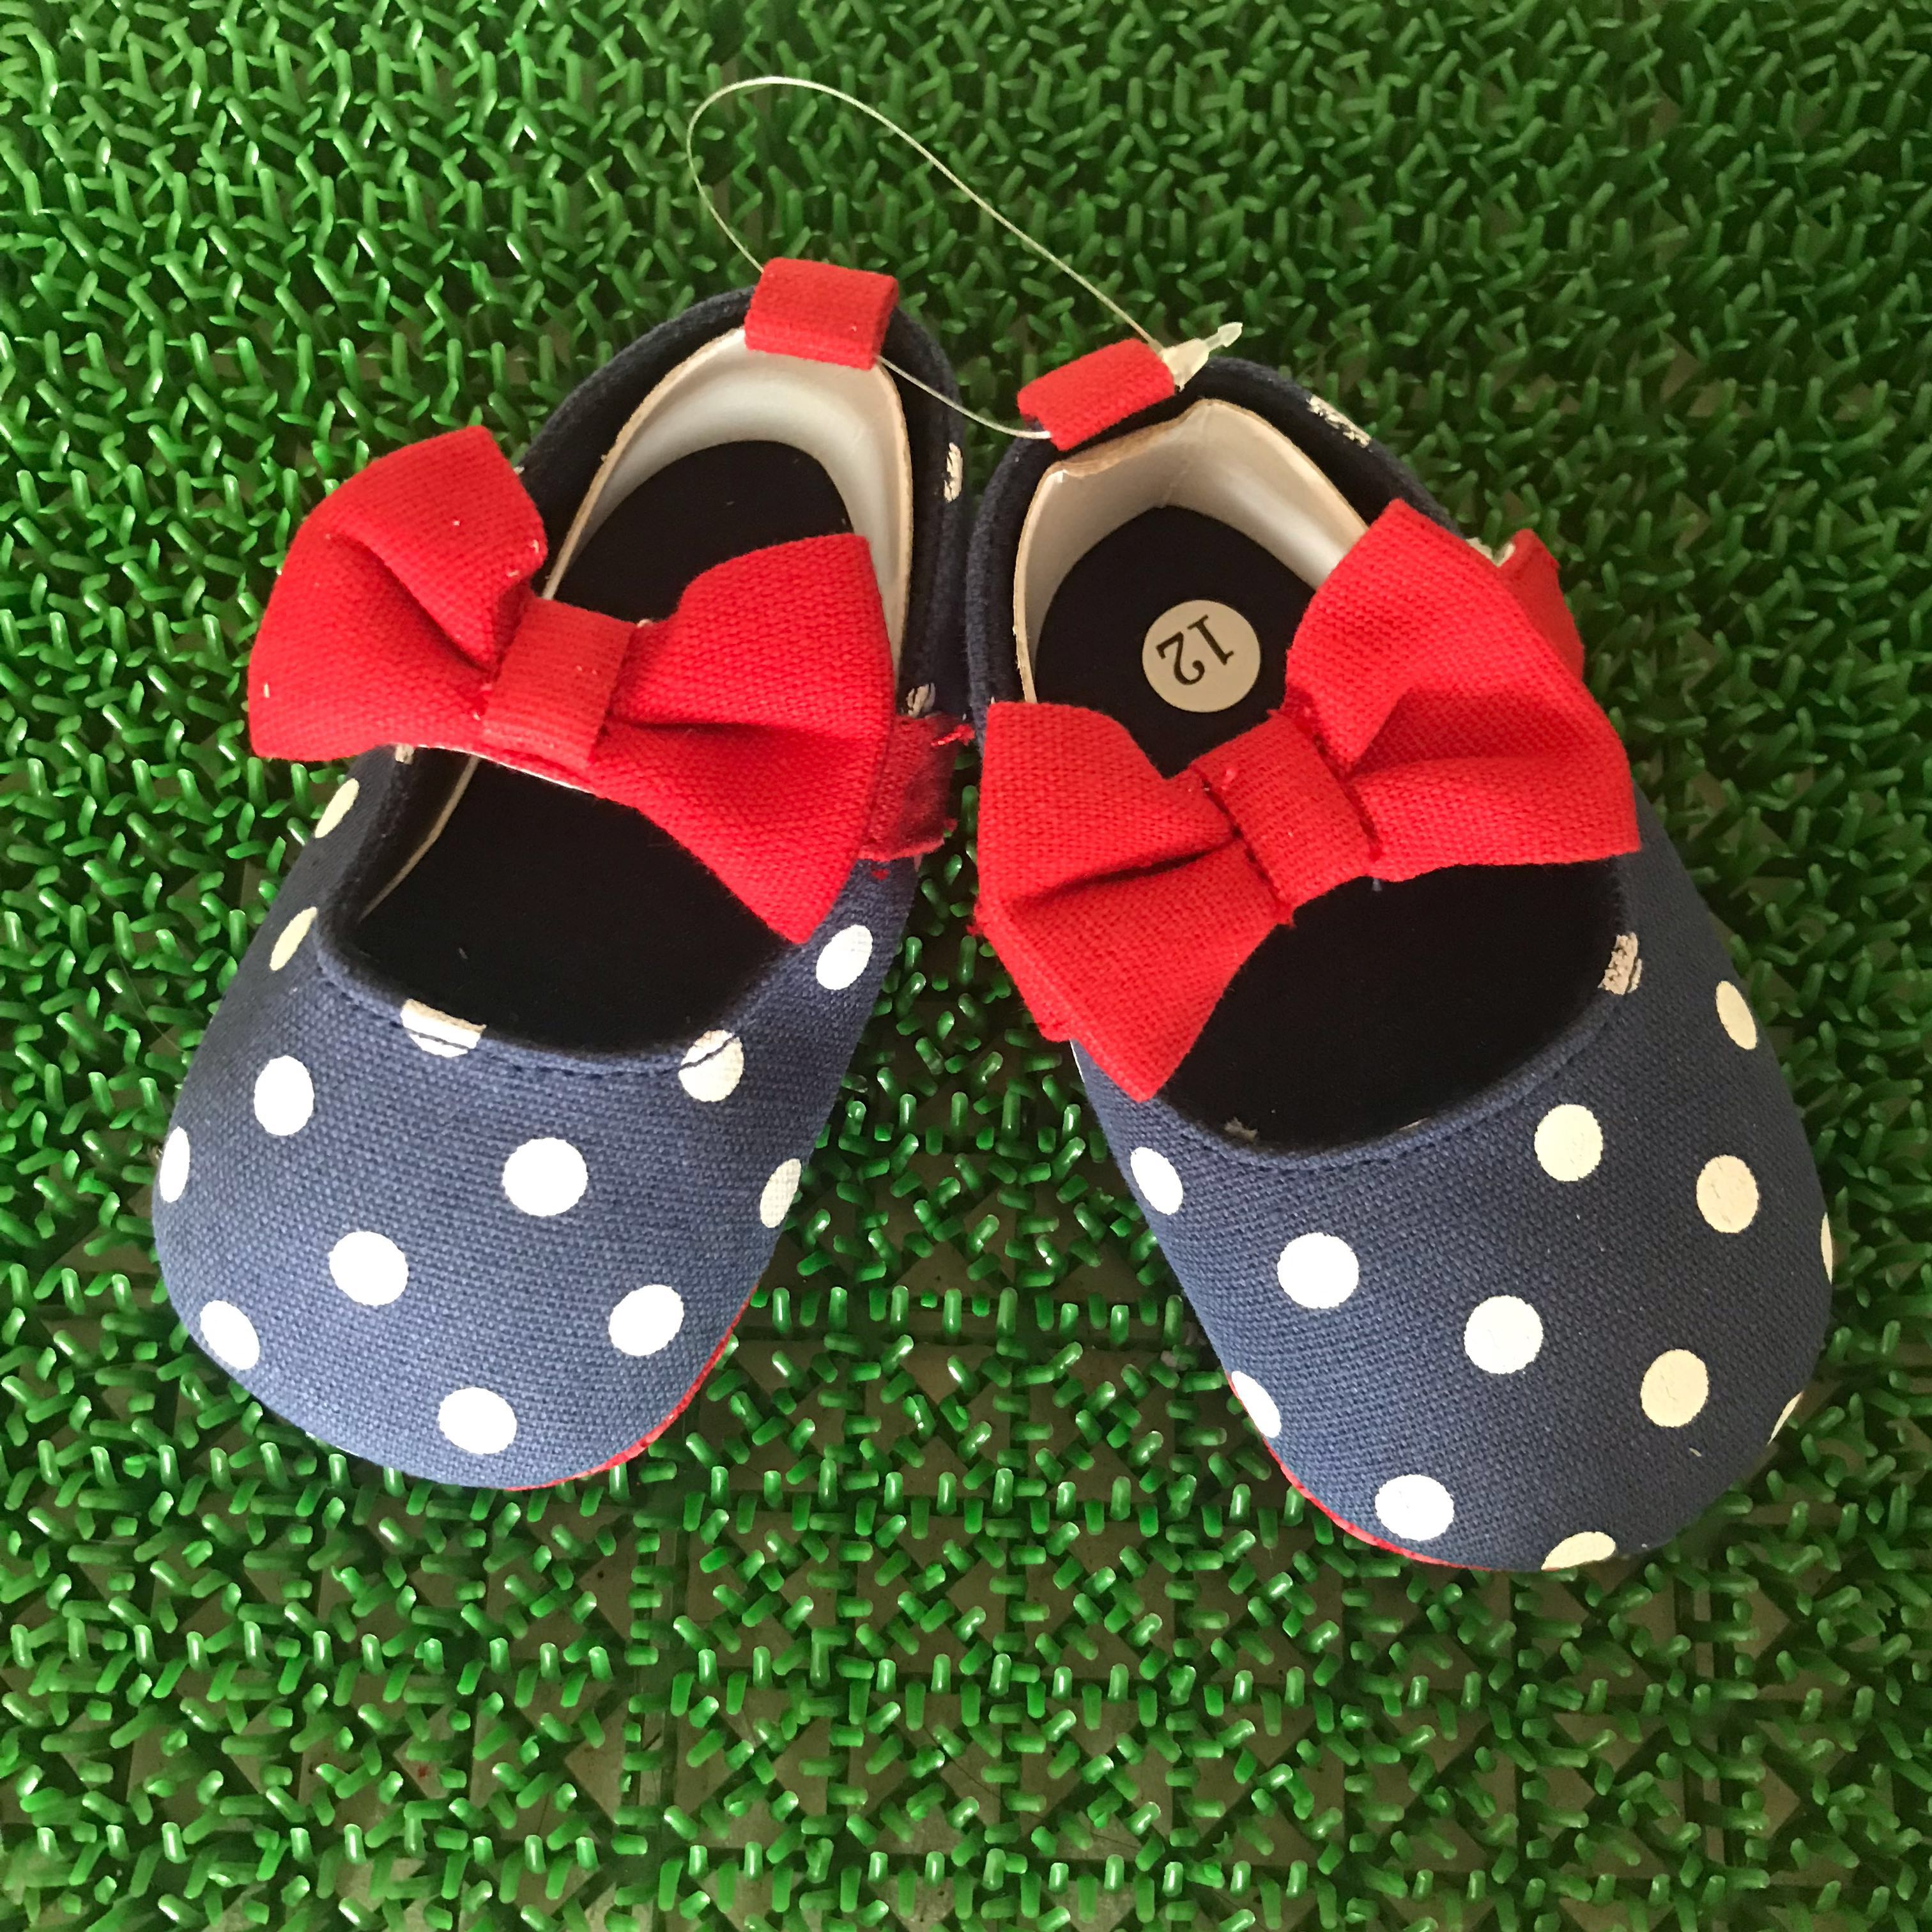 Branded Mary Jane Shoes Kids Newborn Baby Girl Bow Shoes Infant Toddler Polka Dot Prewalker Bebe Baby Girl Footwear 100% Original First Walkers Baby Shoes